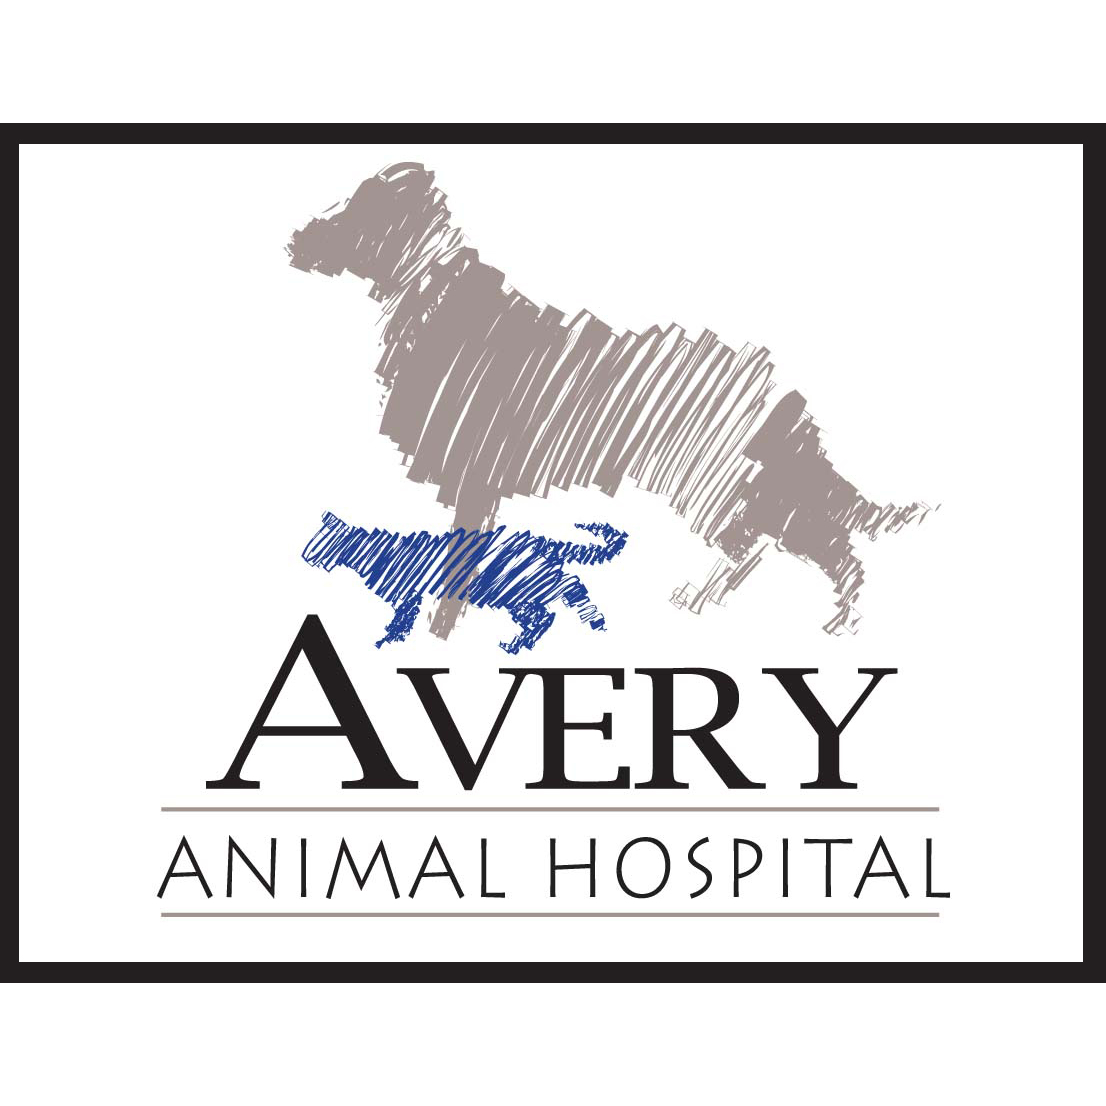 Avery Animal Hospital - Hilliard, OH - Veterinarians